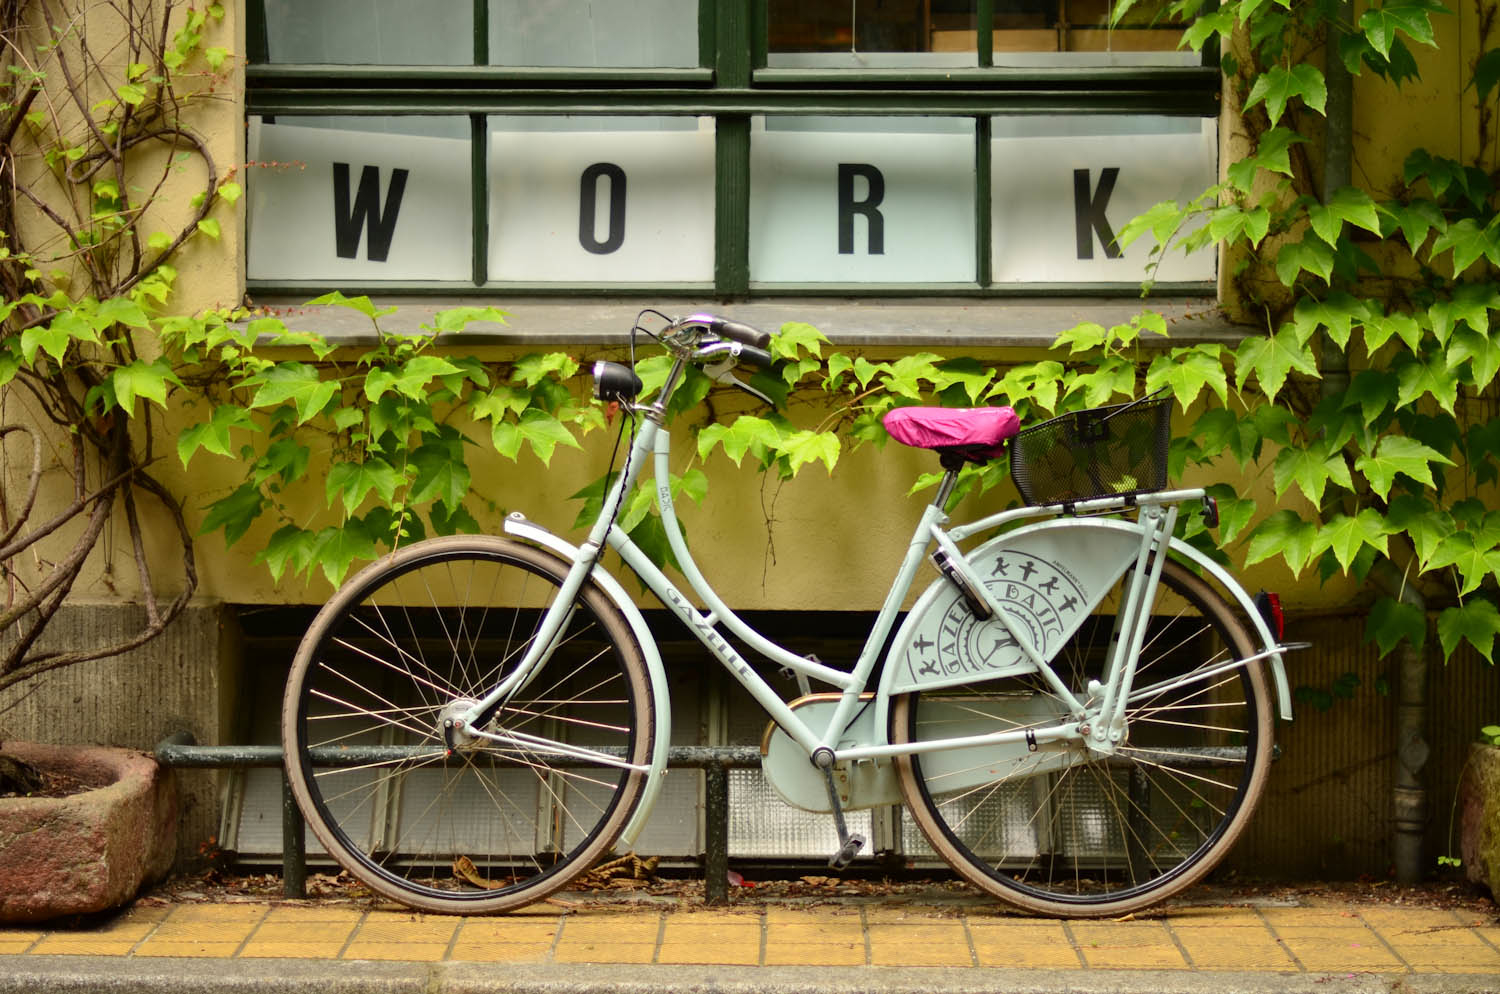 Bike and work sign.jpg